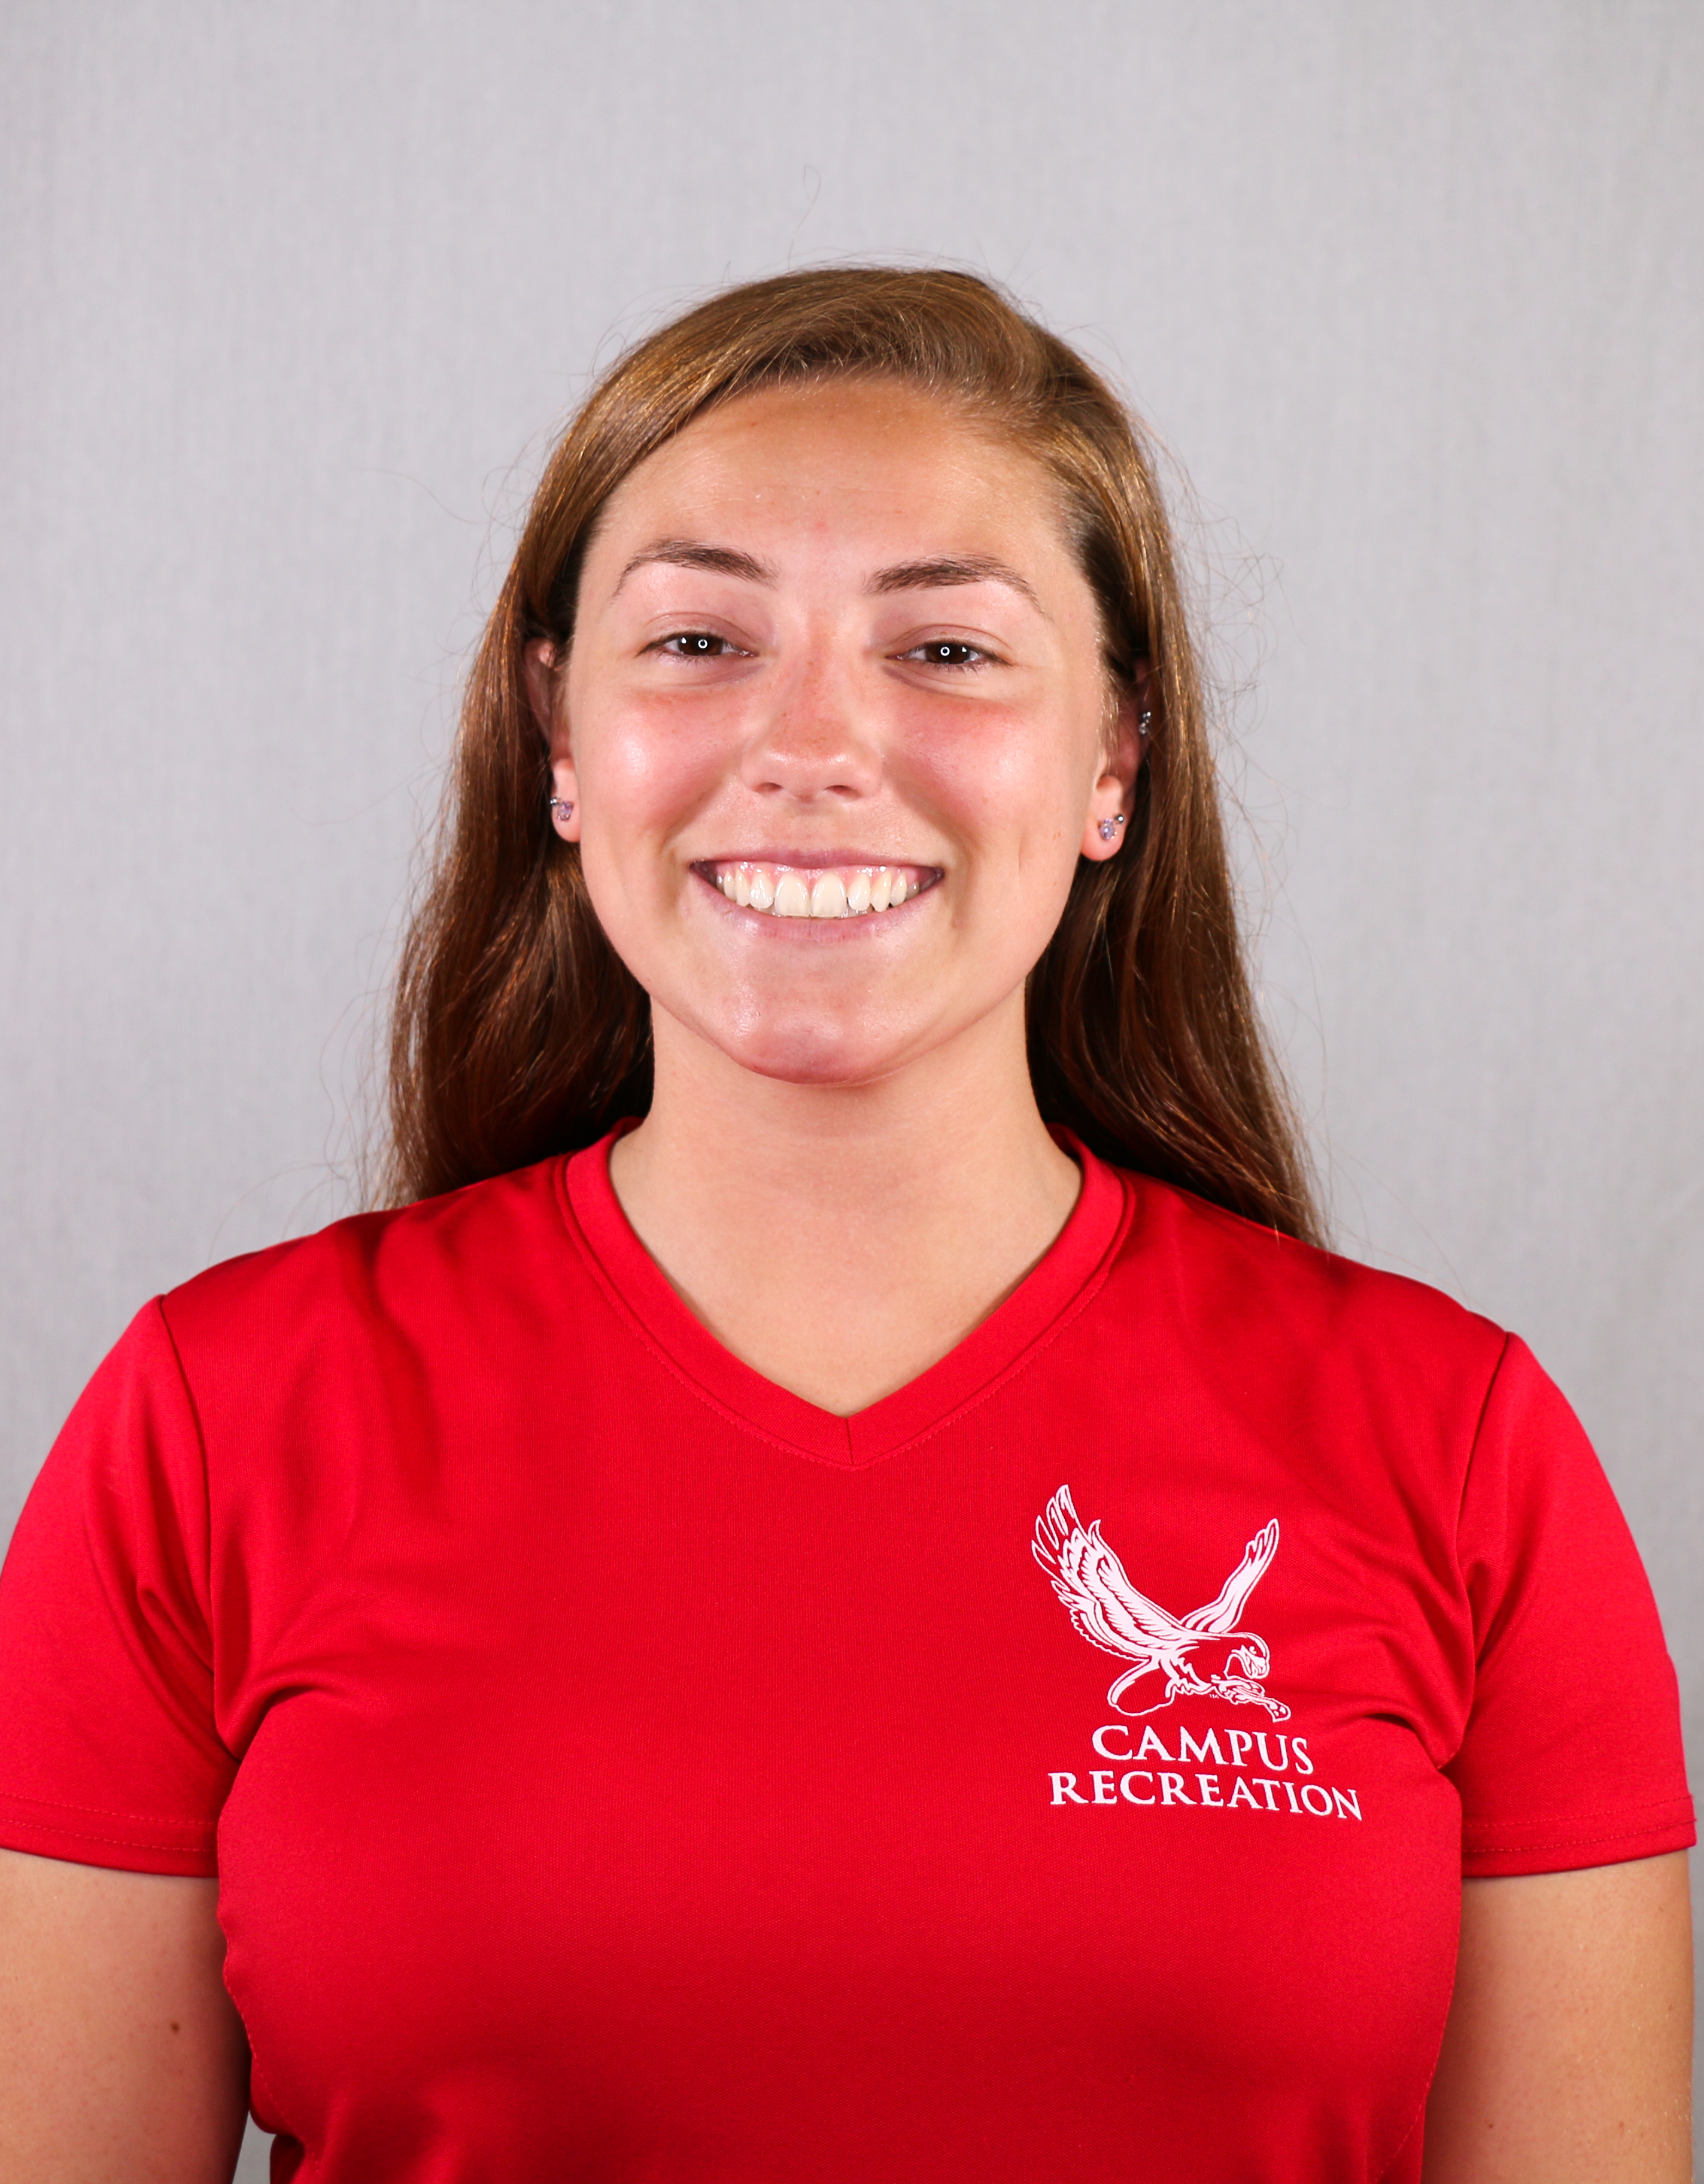 Headshot of Flo Coccoz wearing a red Campus Recreation t-shirt.